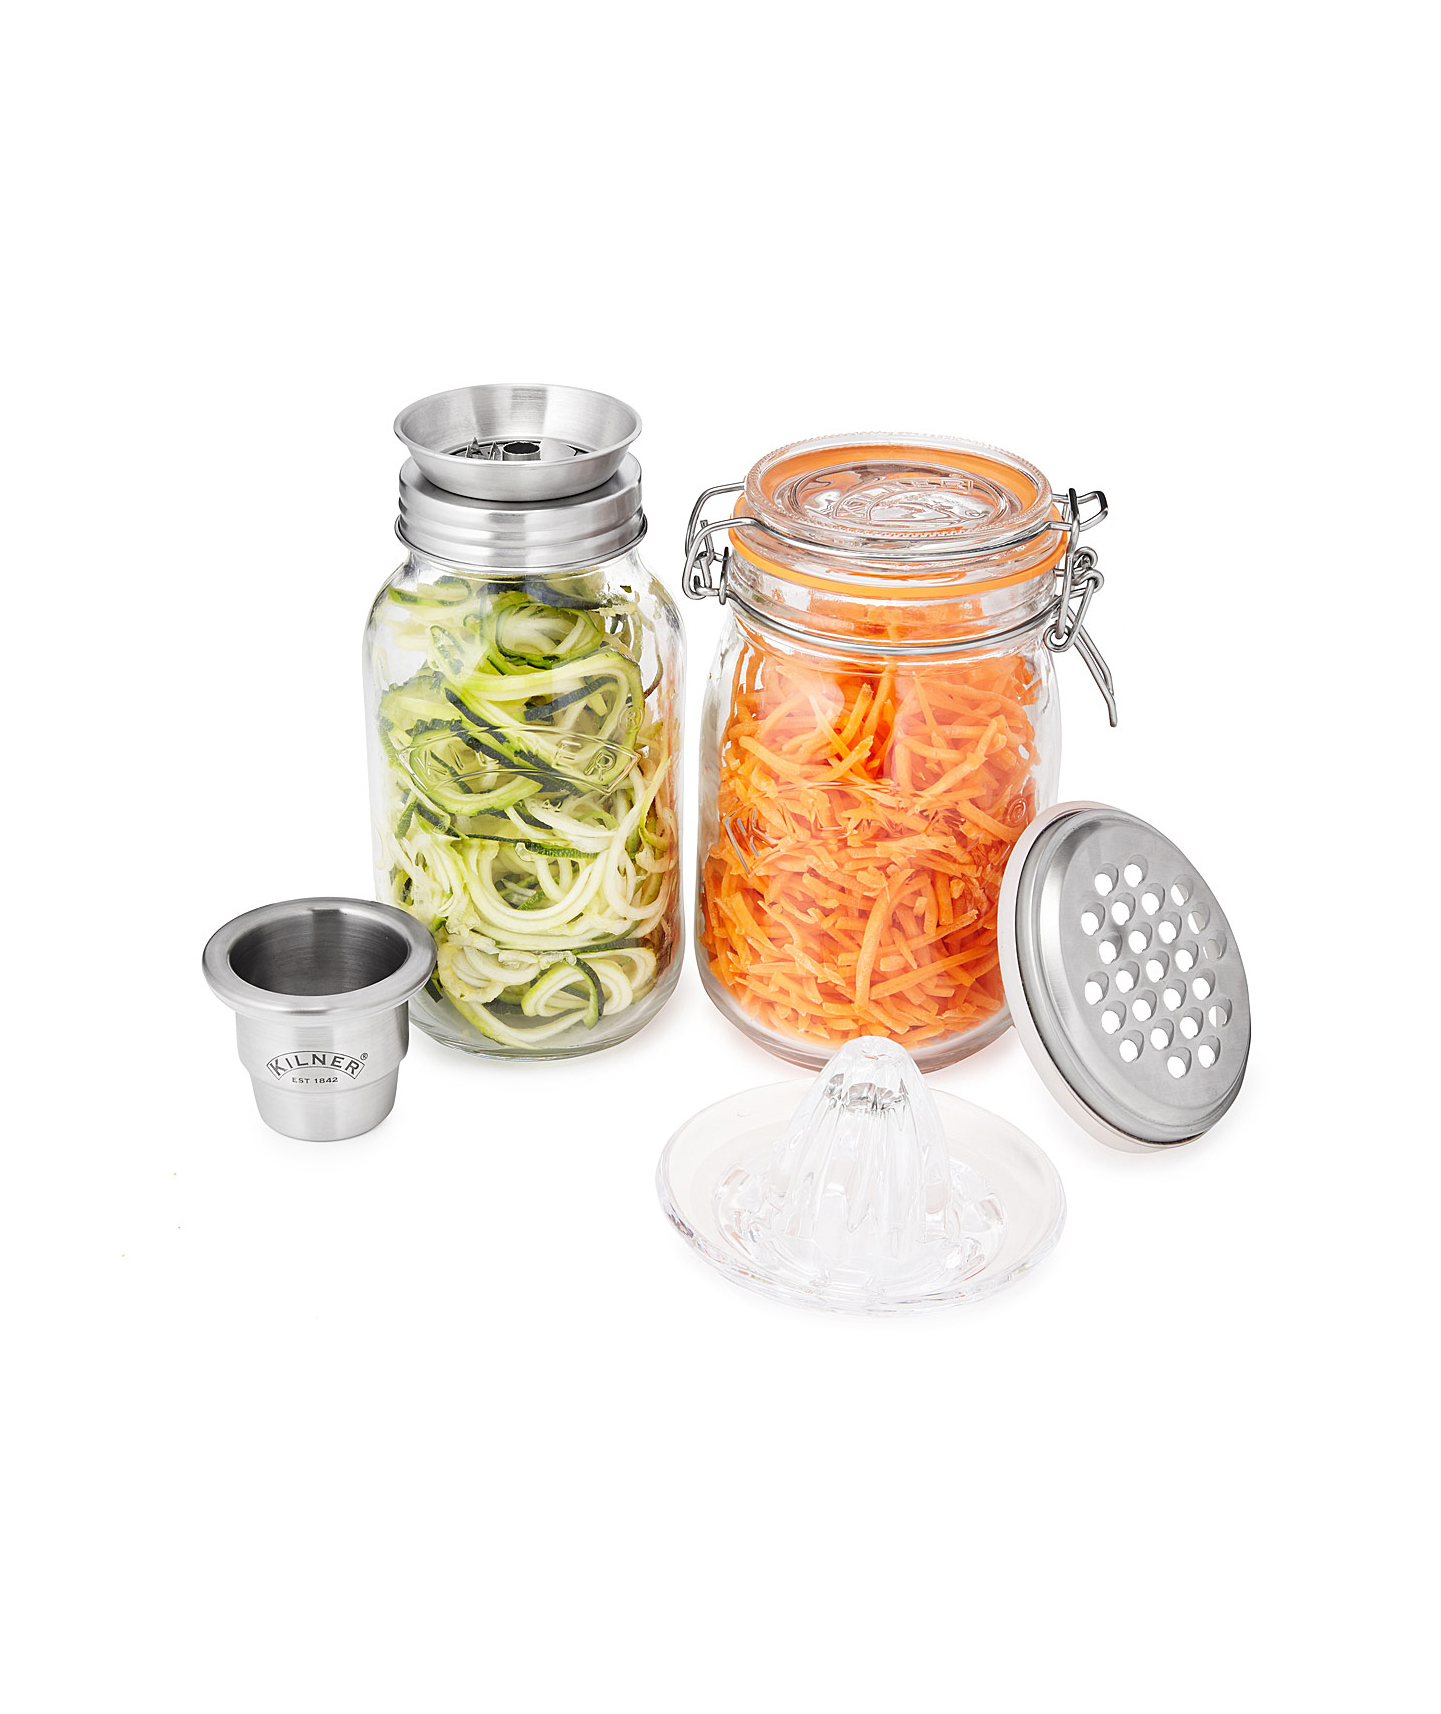 5 Multi-Tasking Tools You Didn't Know Your Kitchen Needed